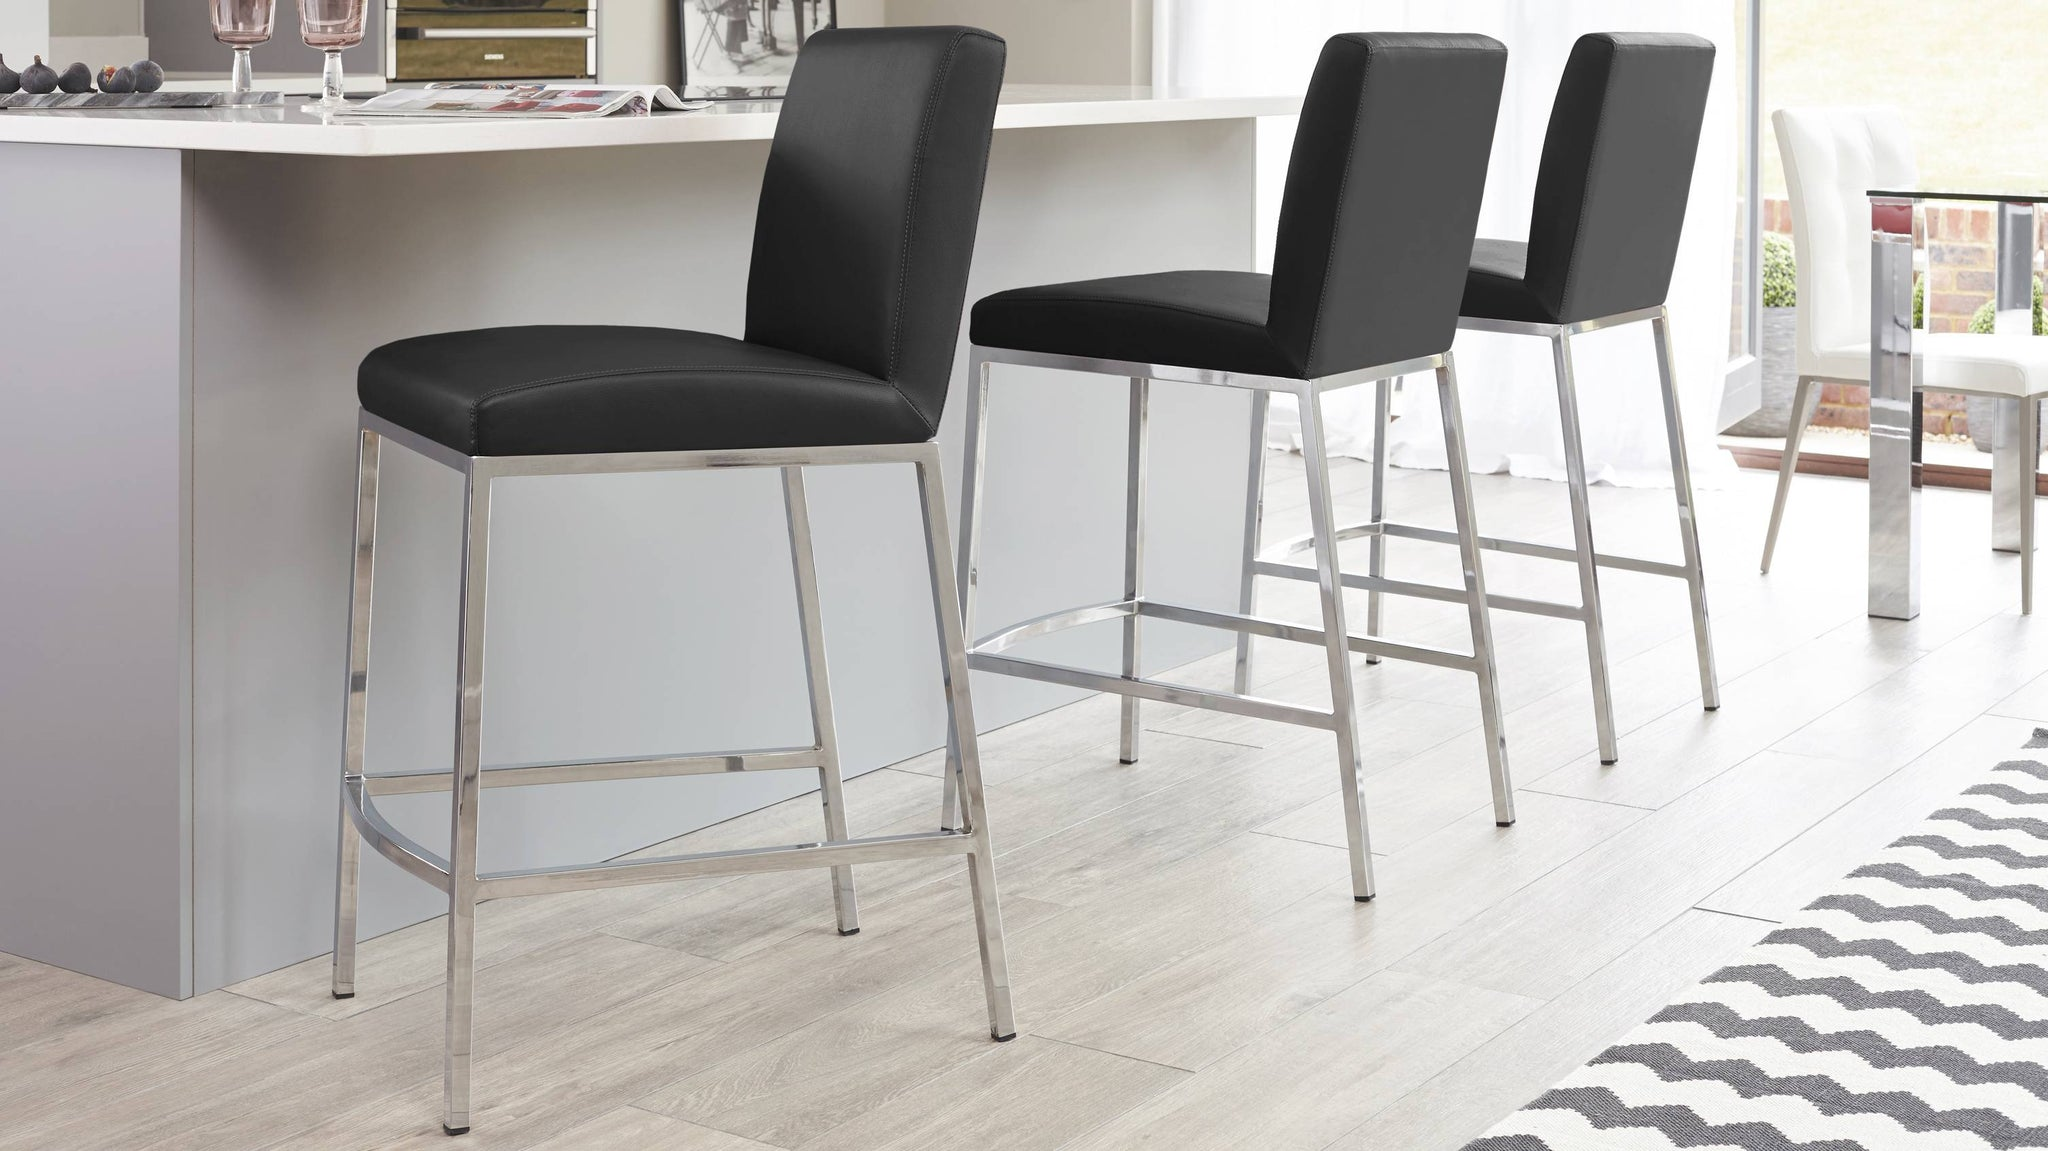 Black and Chrome Bar Stool with a Footrest